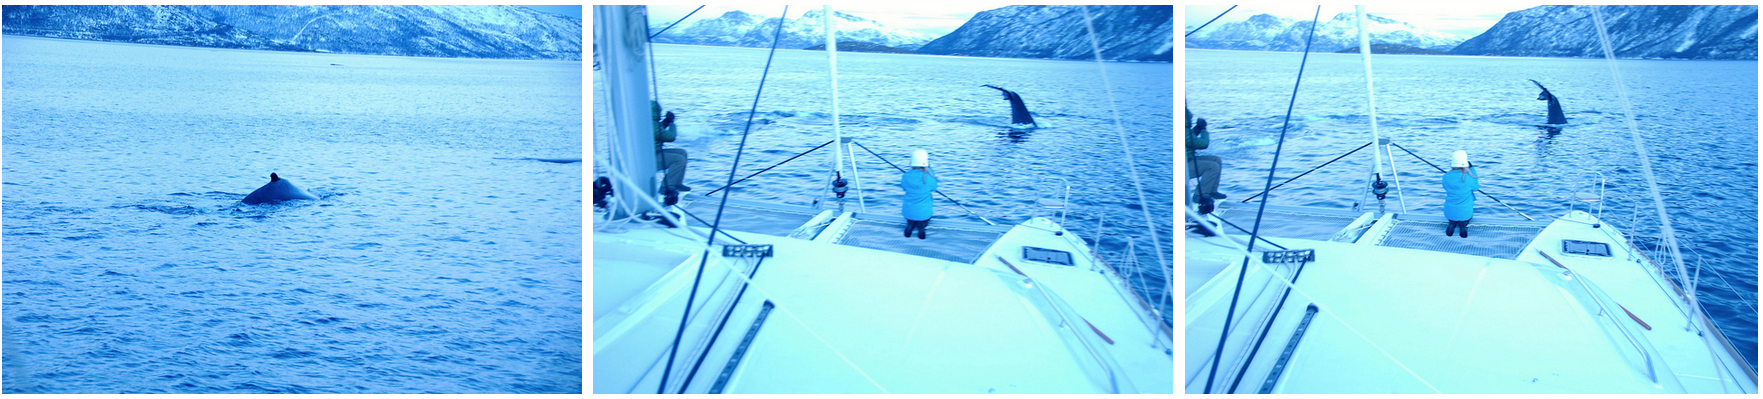 #Whale #Watching and #Fishing #Tromsø